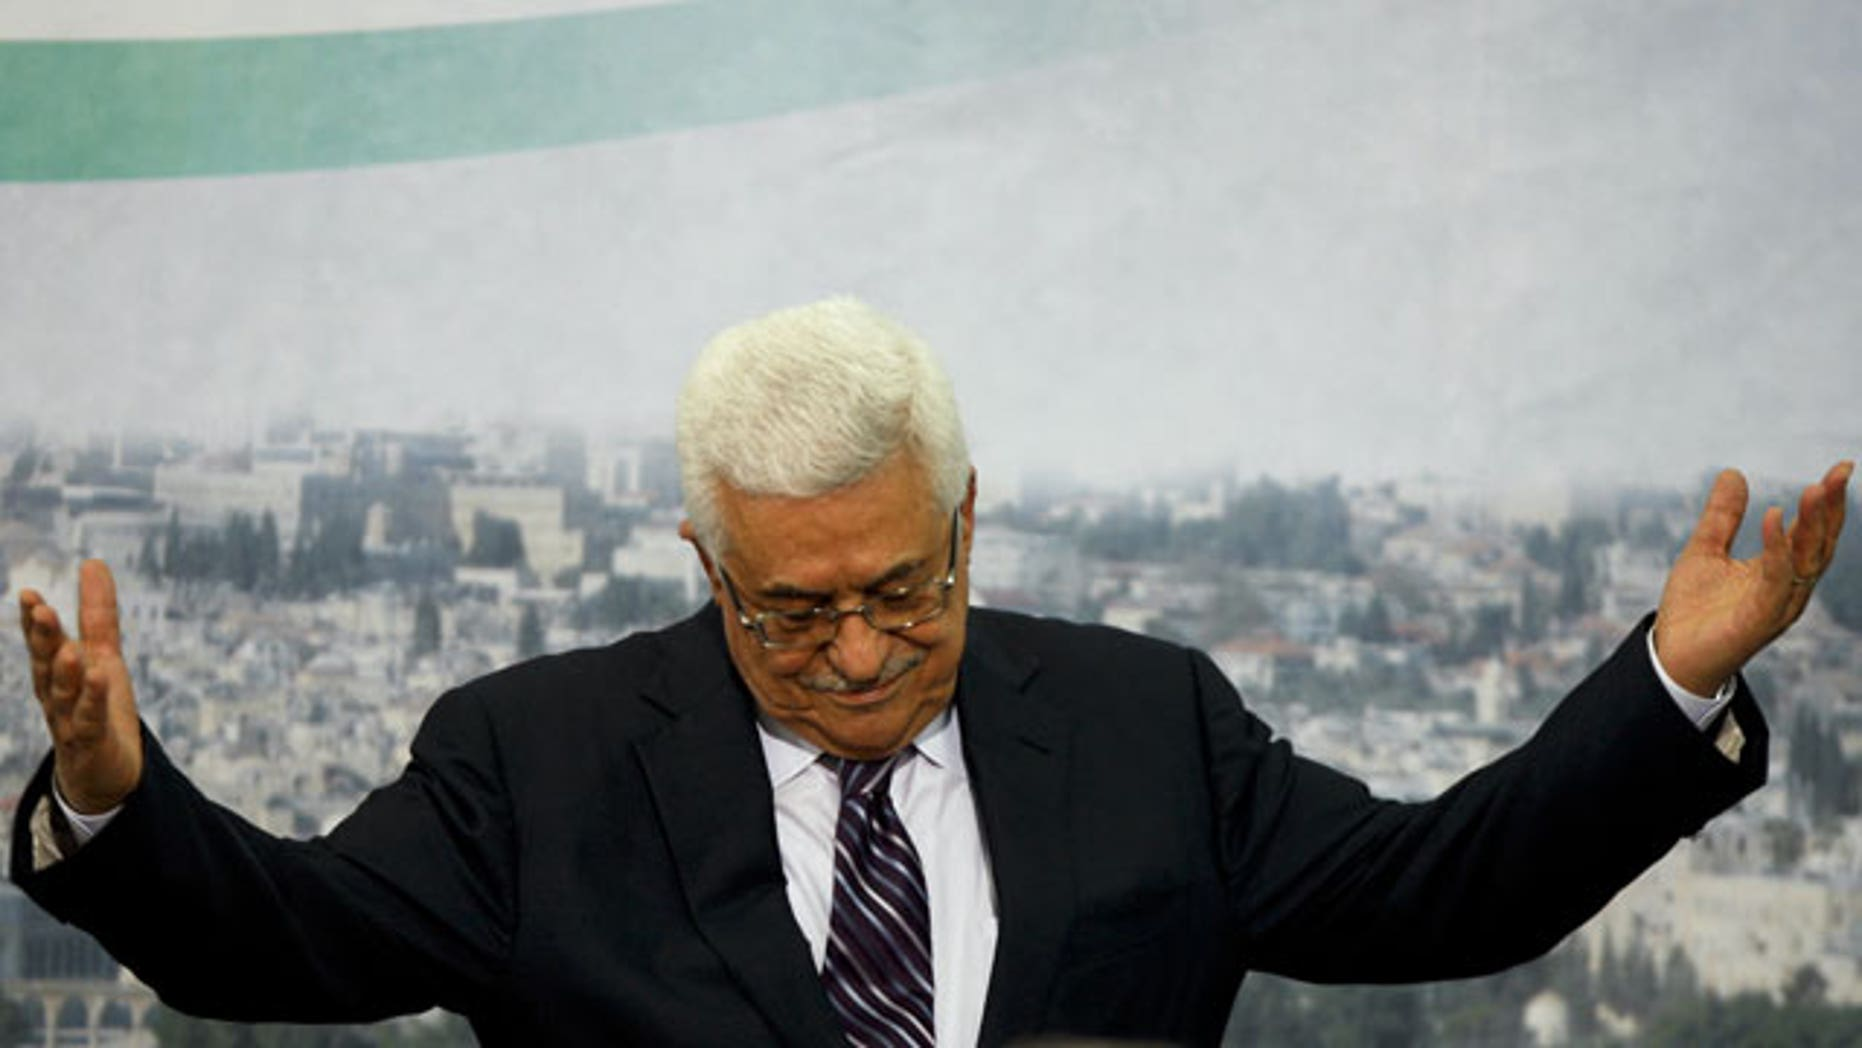 September 16: Palestinian President Mahmoud Abbas gestures and the end of his speech in the West Bank city of Ramallah, Abbas said Friday he would ask the Security Council next week to accept the Palestinians as full members at the United Nations.